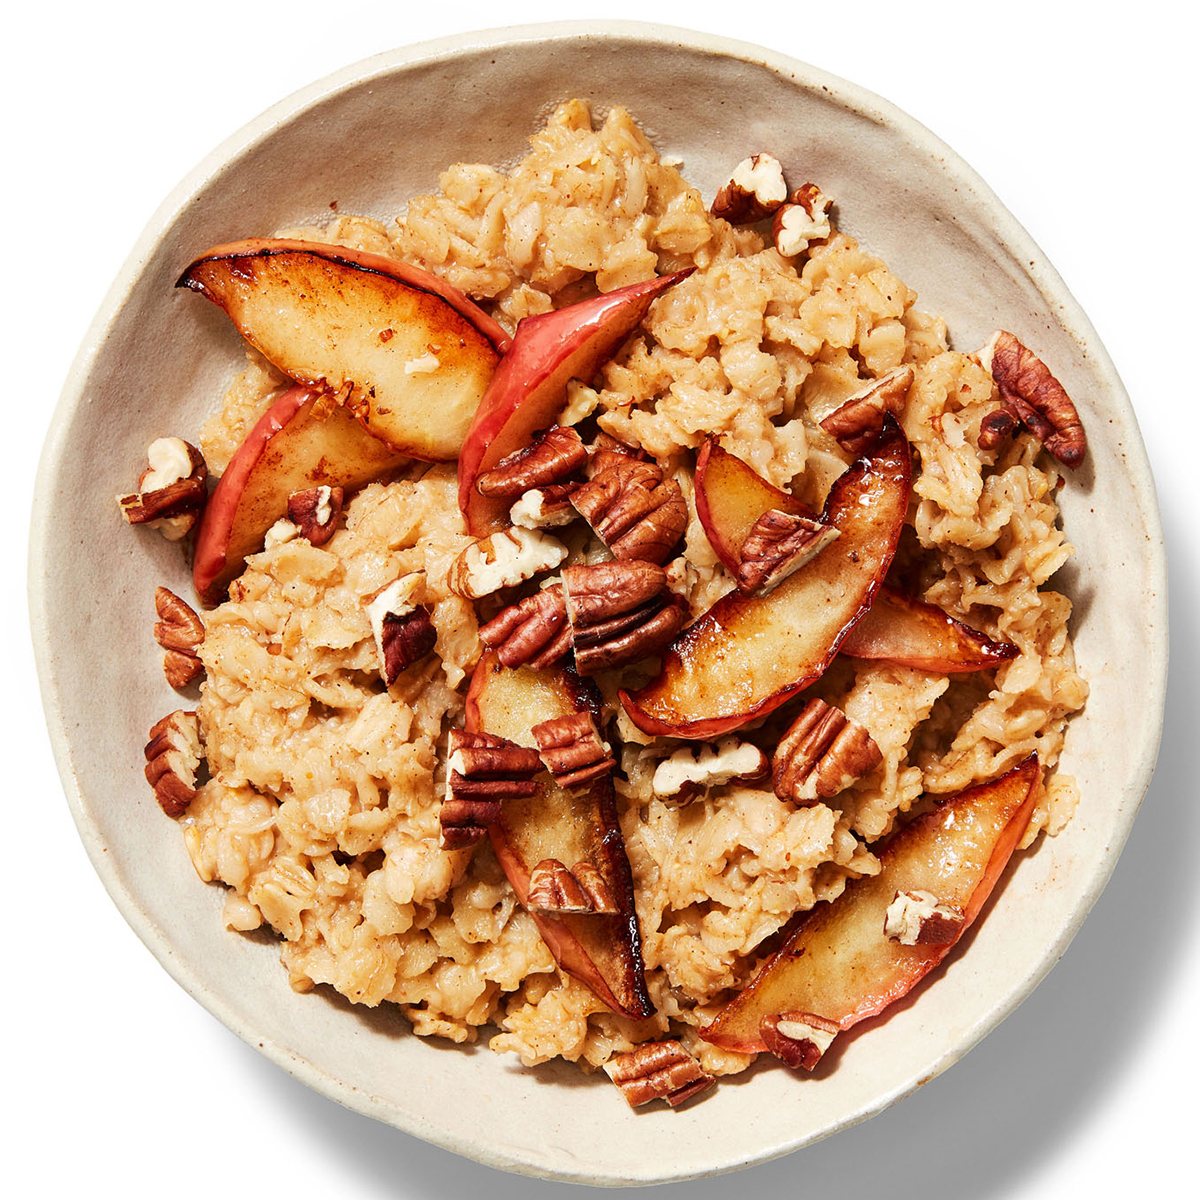 apple cider oatmeal with sauteed apples